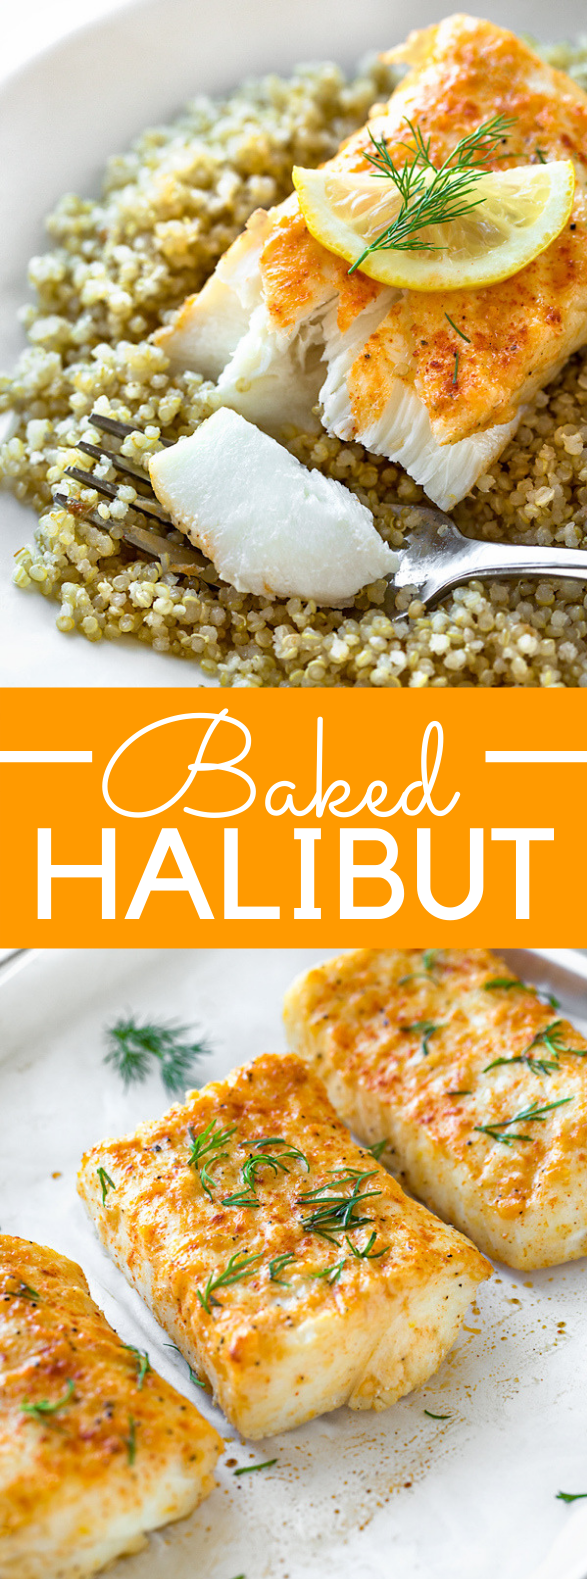 Baked Halibut #healthy #fish